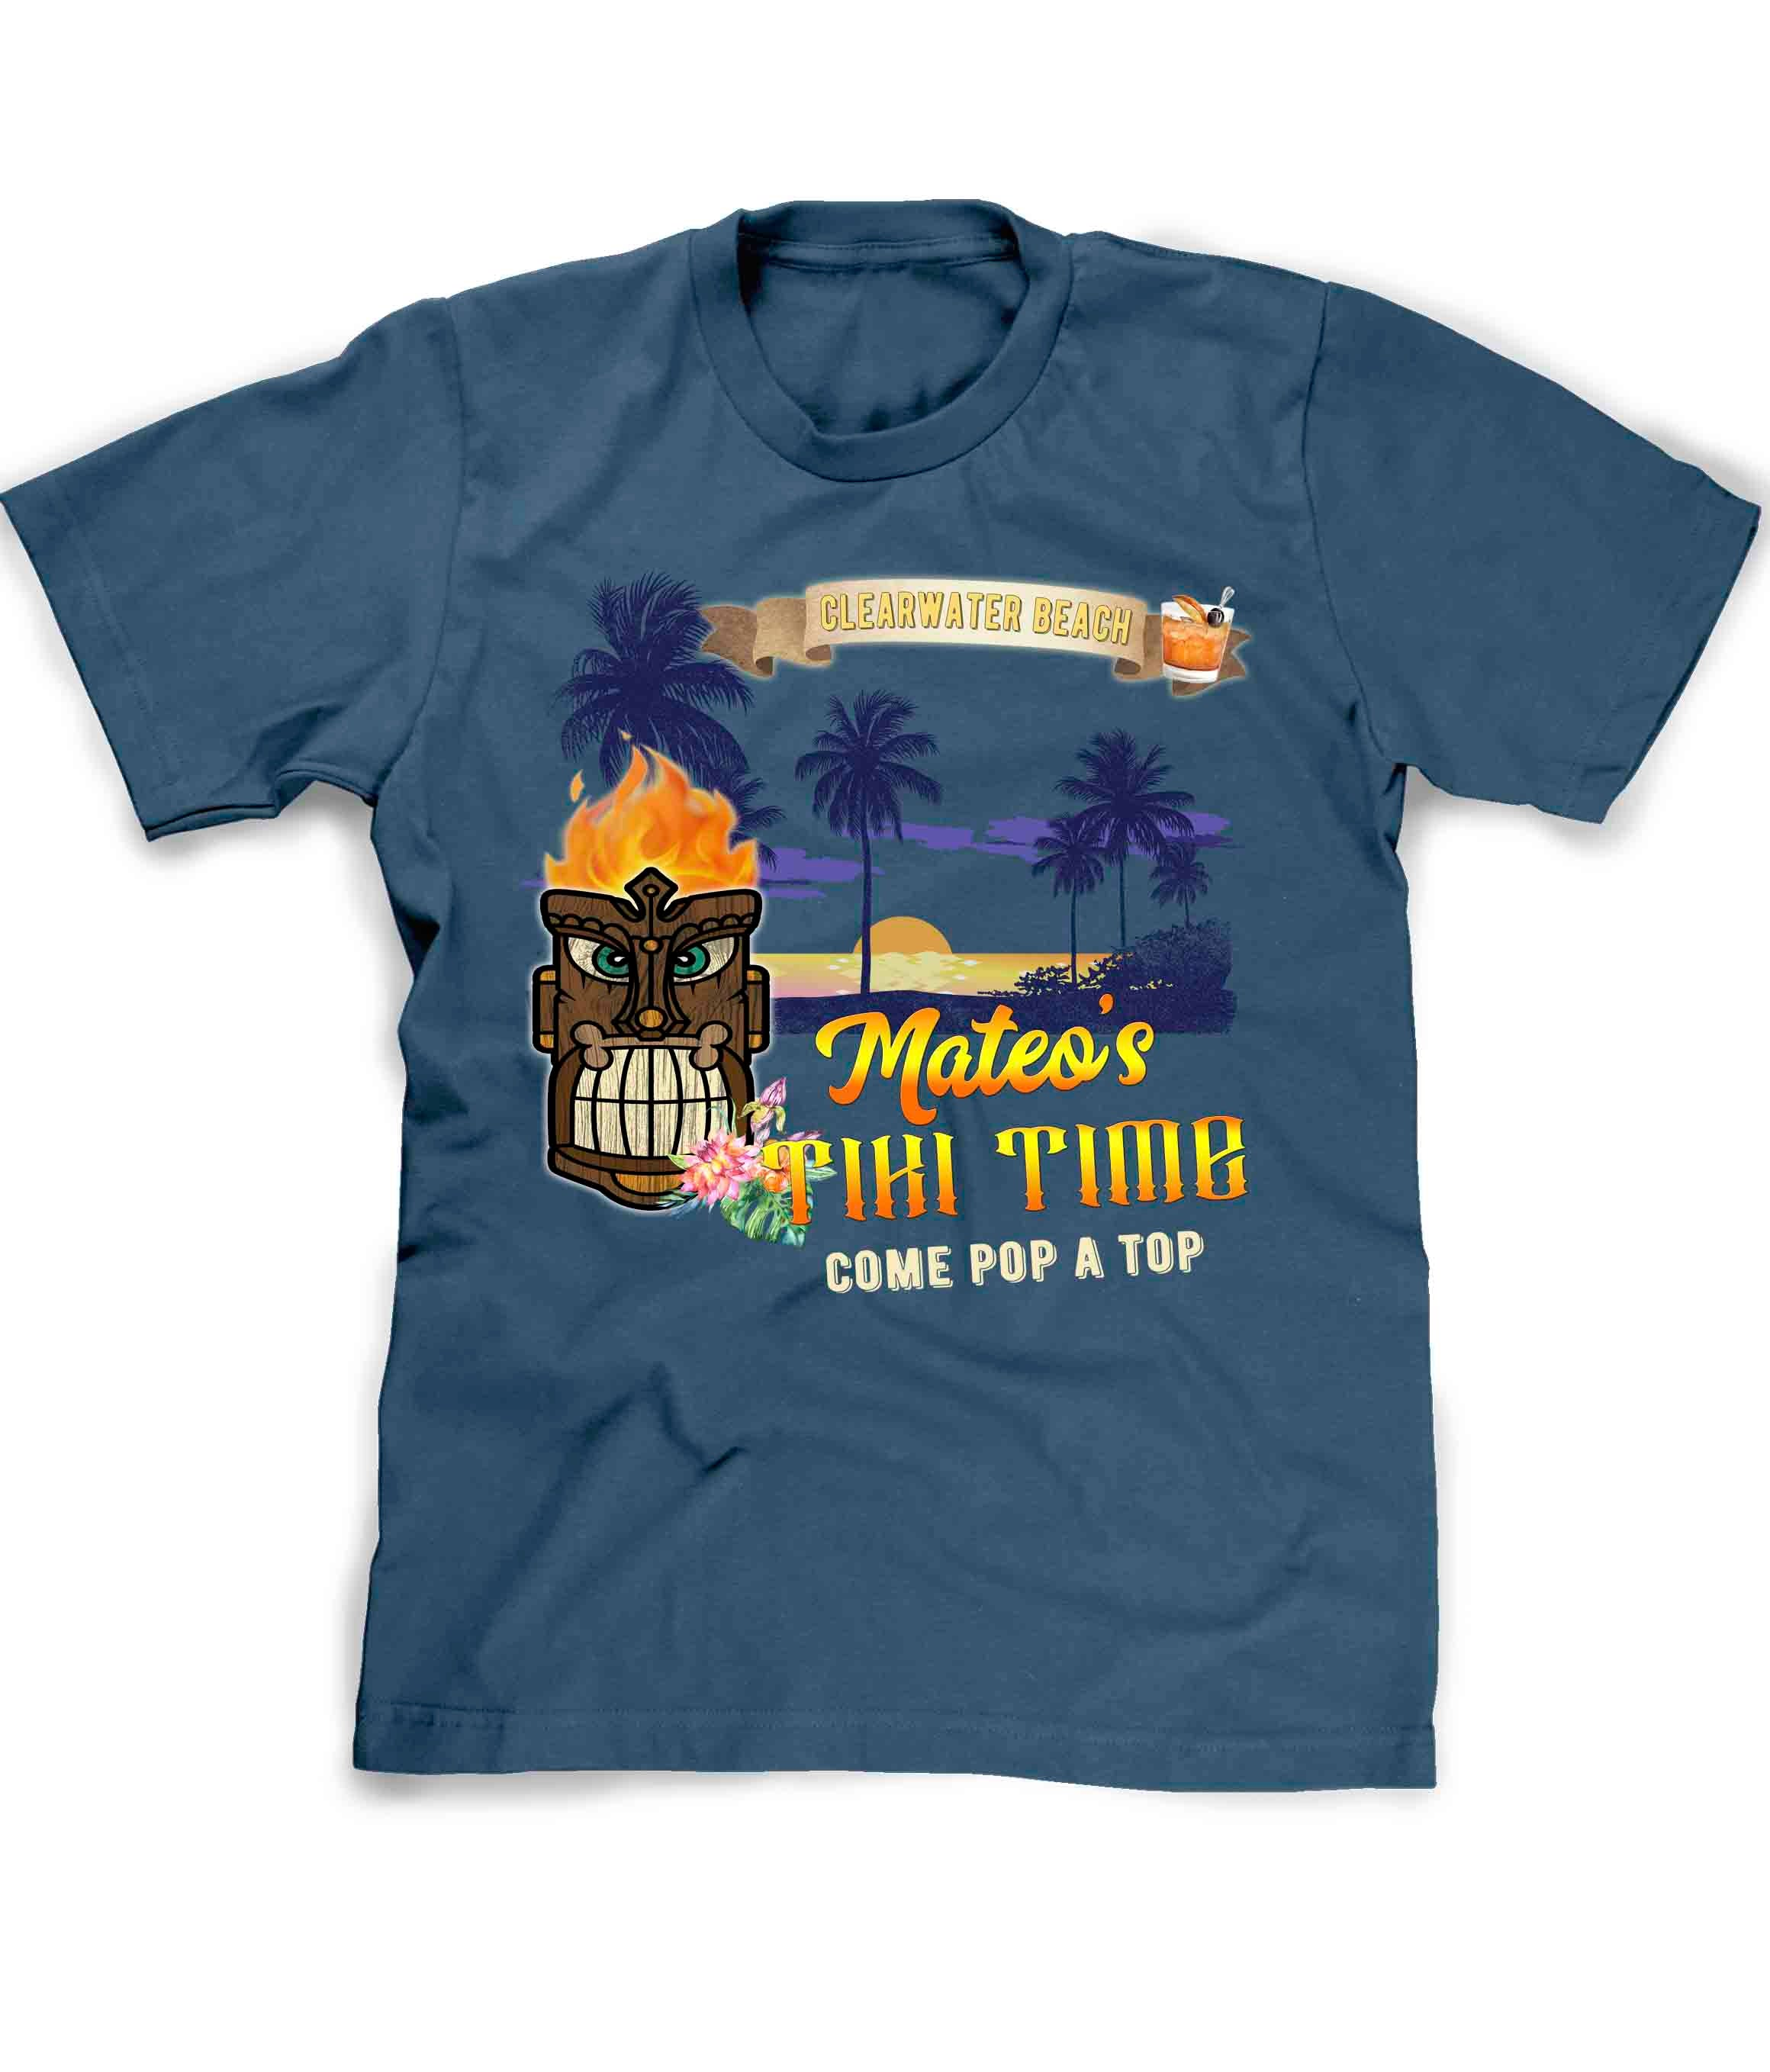 Tropical Tiki Bar tee shirt in blue